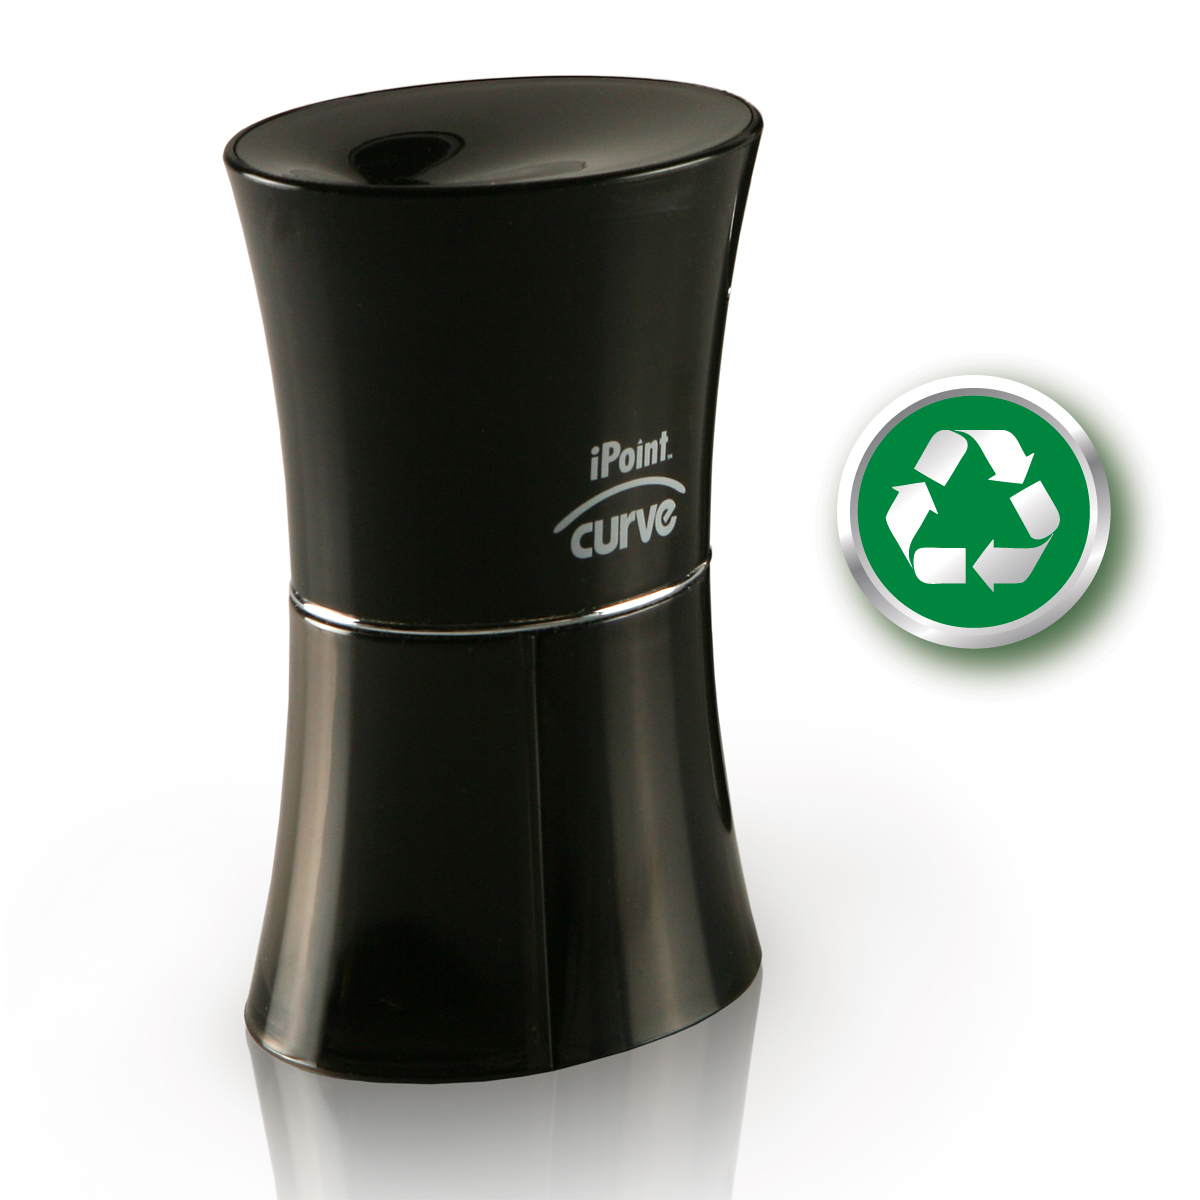 Westcott iPoint KleenEarth Curve Recycled Battery Pencil Sharpener, Black (15217)